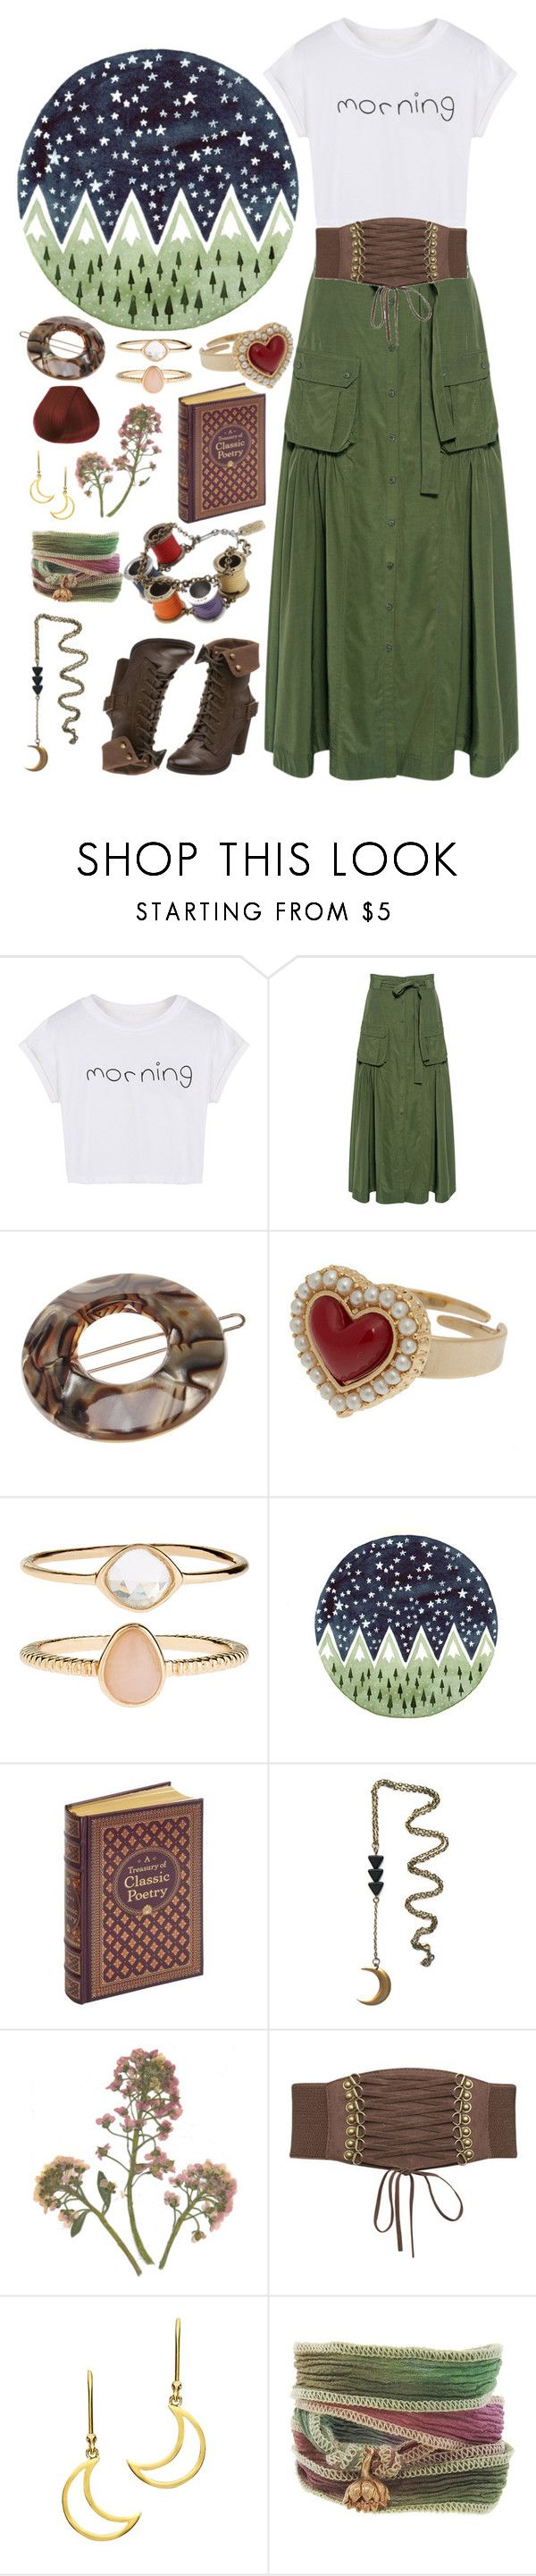 """morning?"" by raelenas ❤ liked on Polyvore featuring WithChic, Marissa Webb, Steve Madden, France Luxe, Accessorize, Wet Seal, London Road and Catherine Michiels"